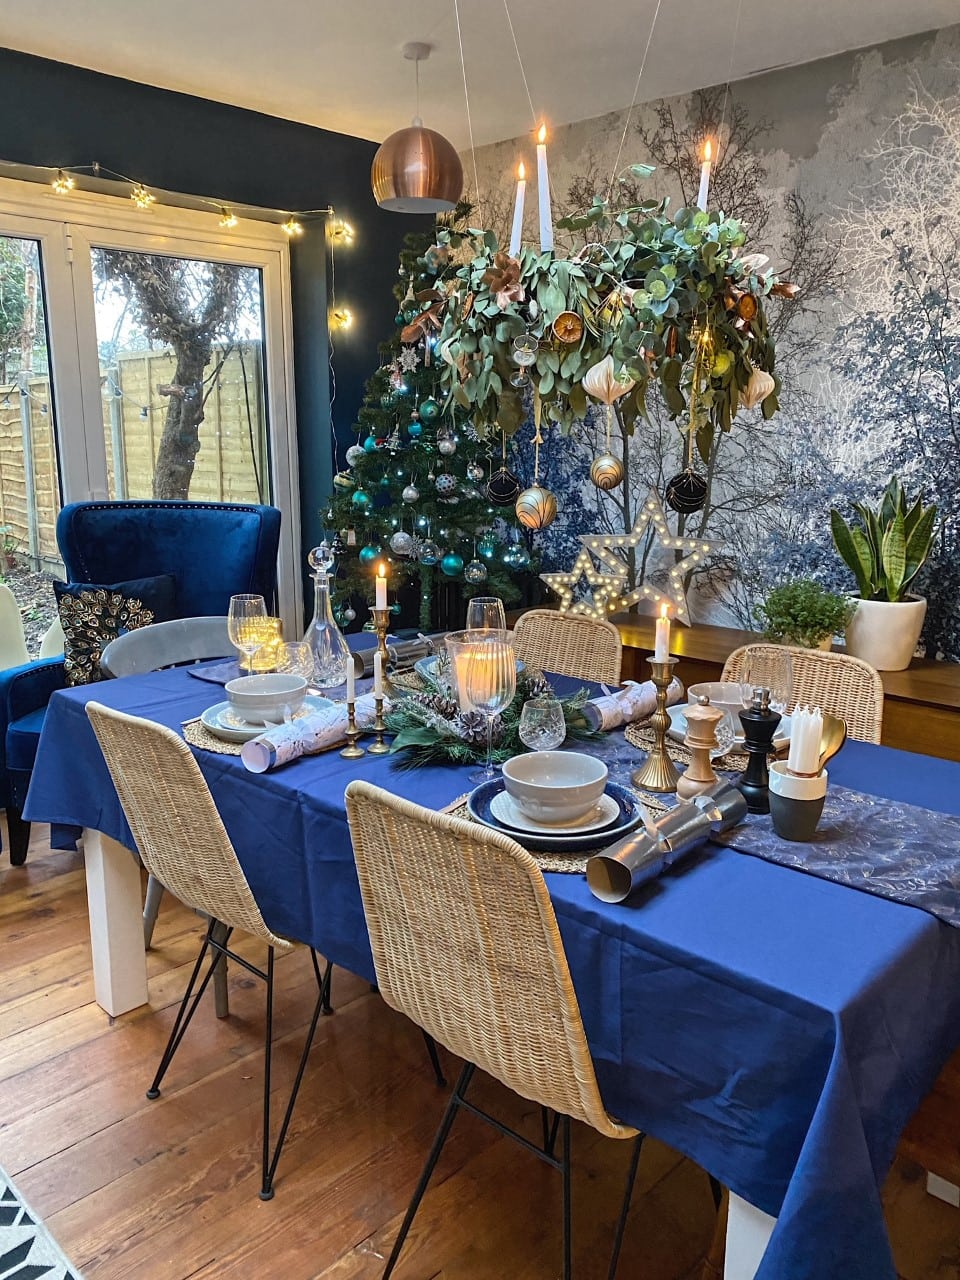 christmas table set up with wreath chandelier, candles and rattan chairs